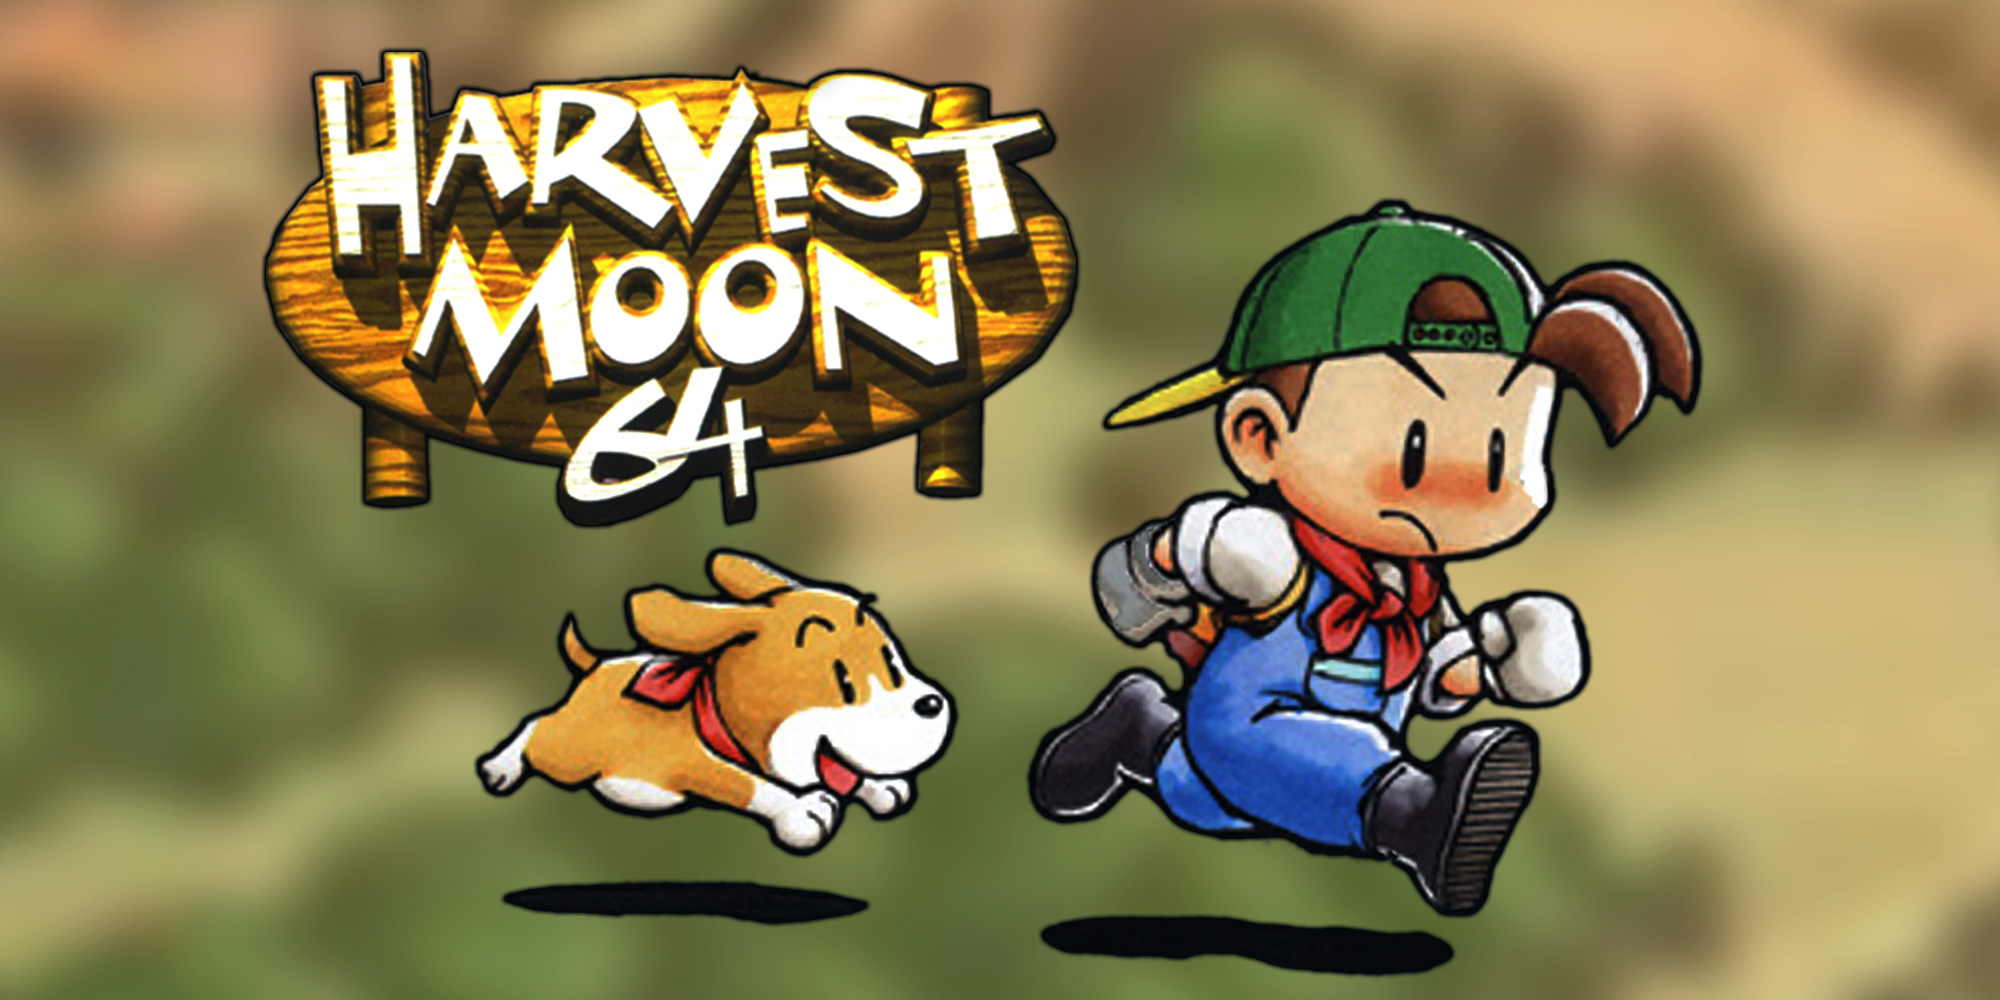 Harvest Moon 64 High Quality Background on Wallpapers Vista